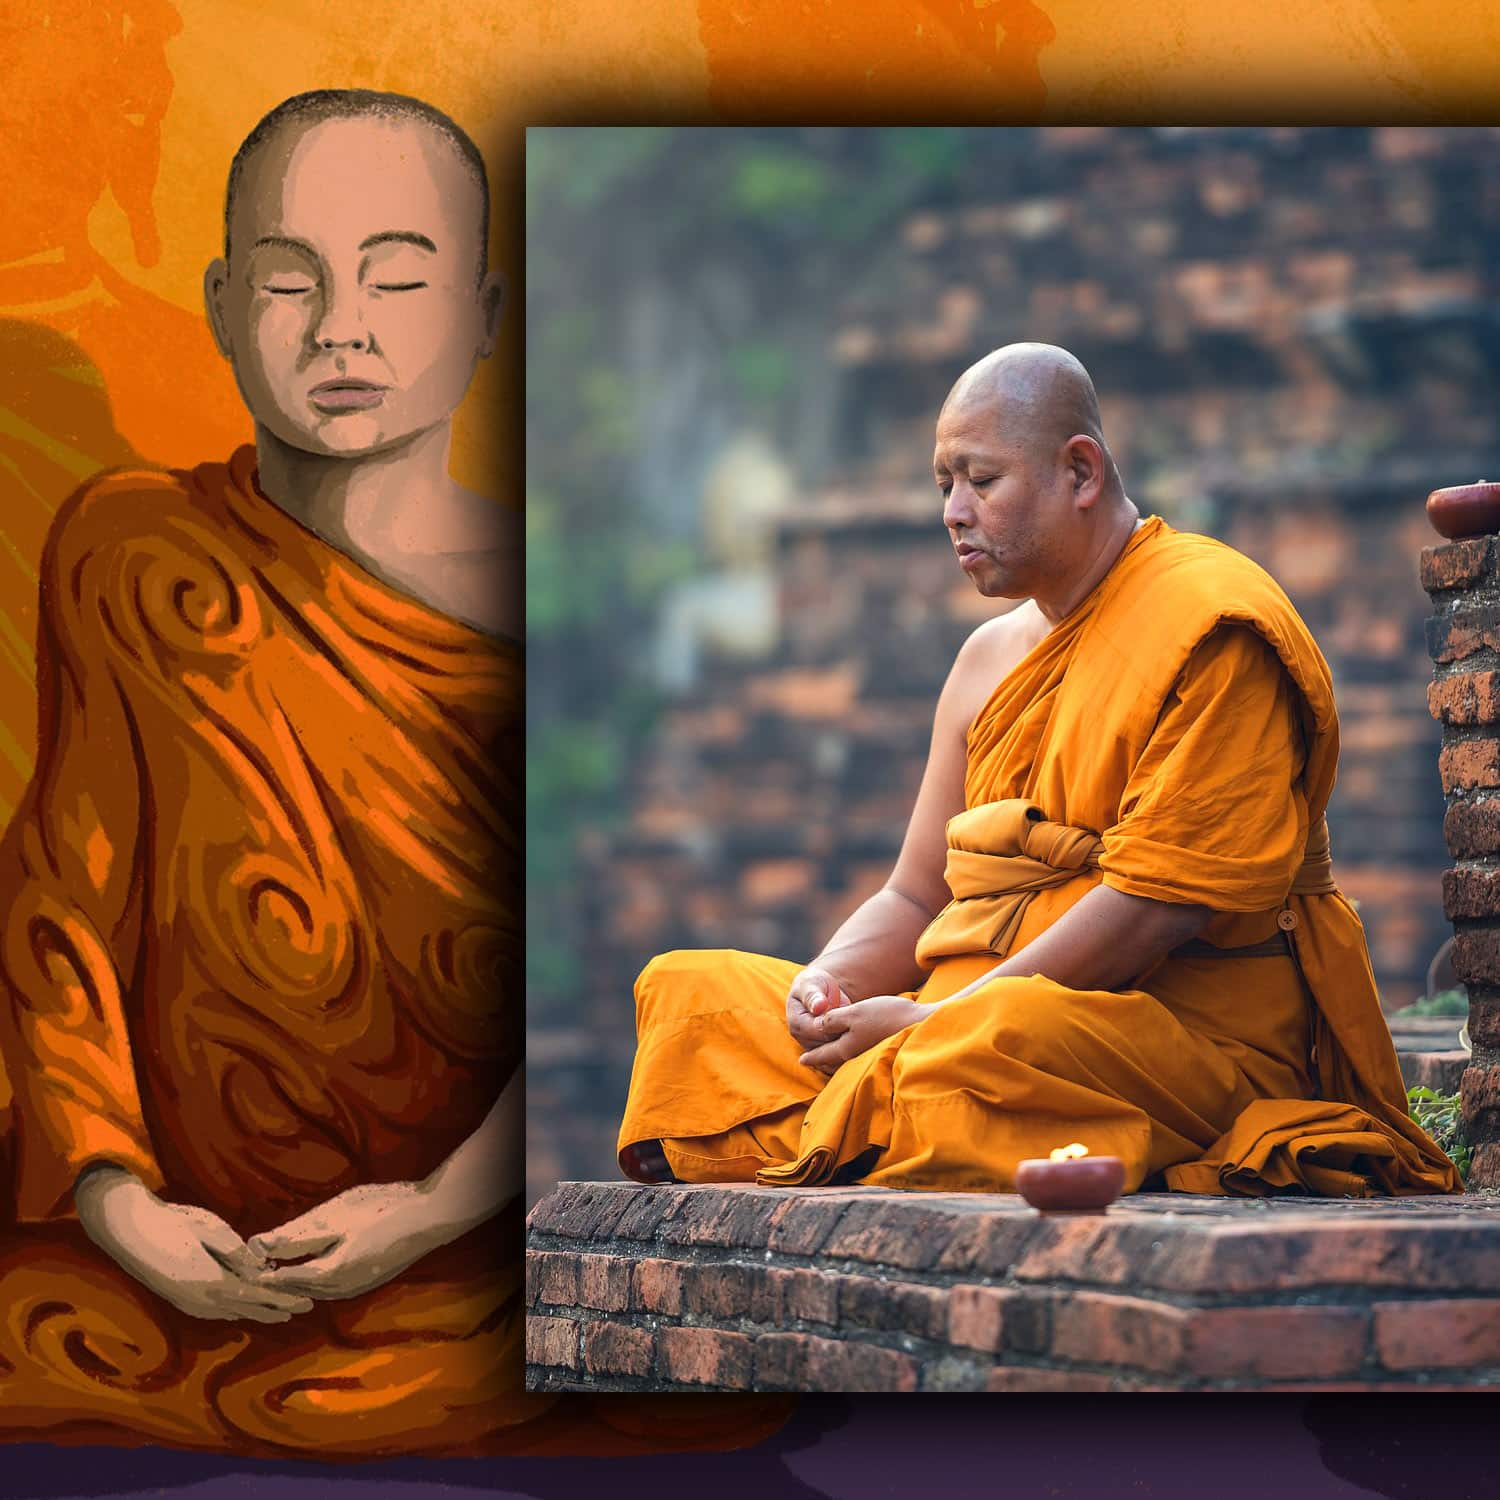 Monks in Mahayana Buddhism